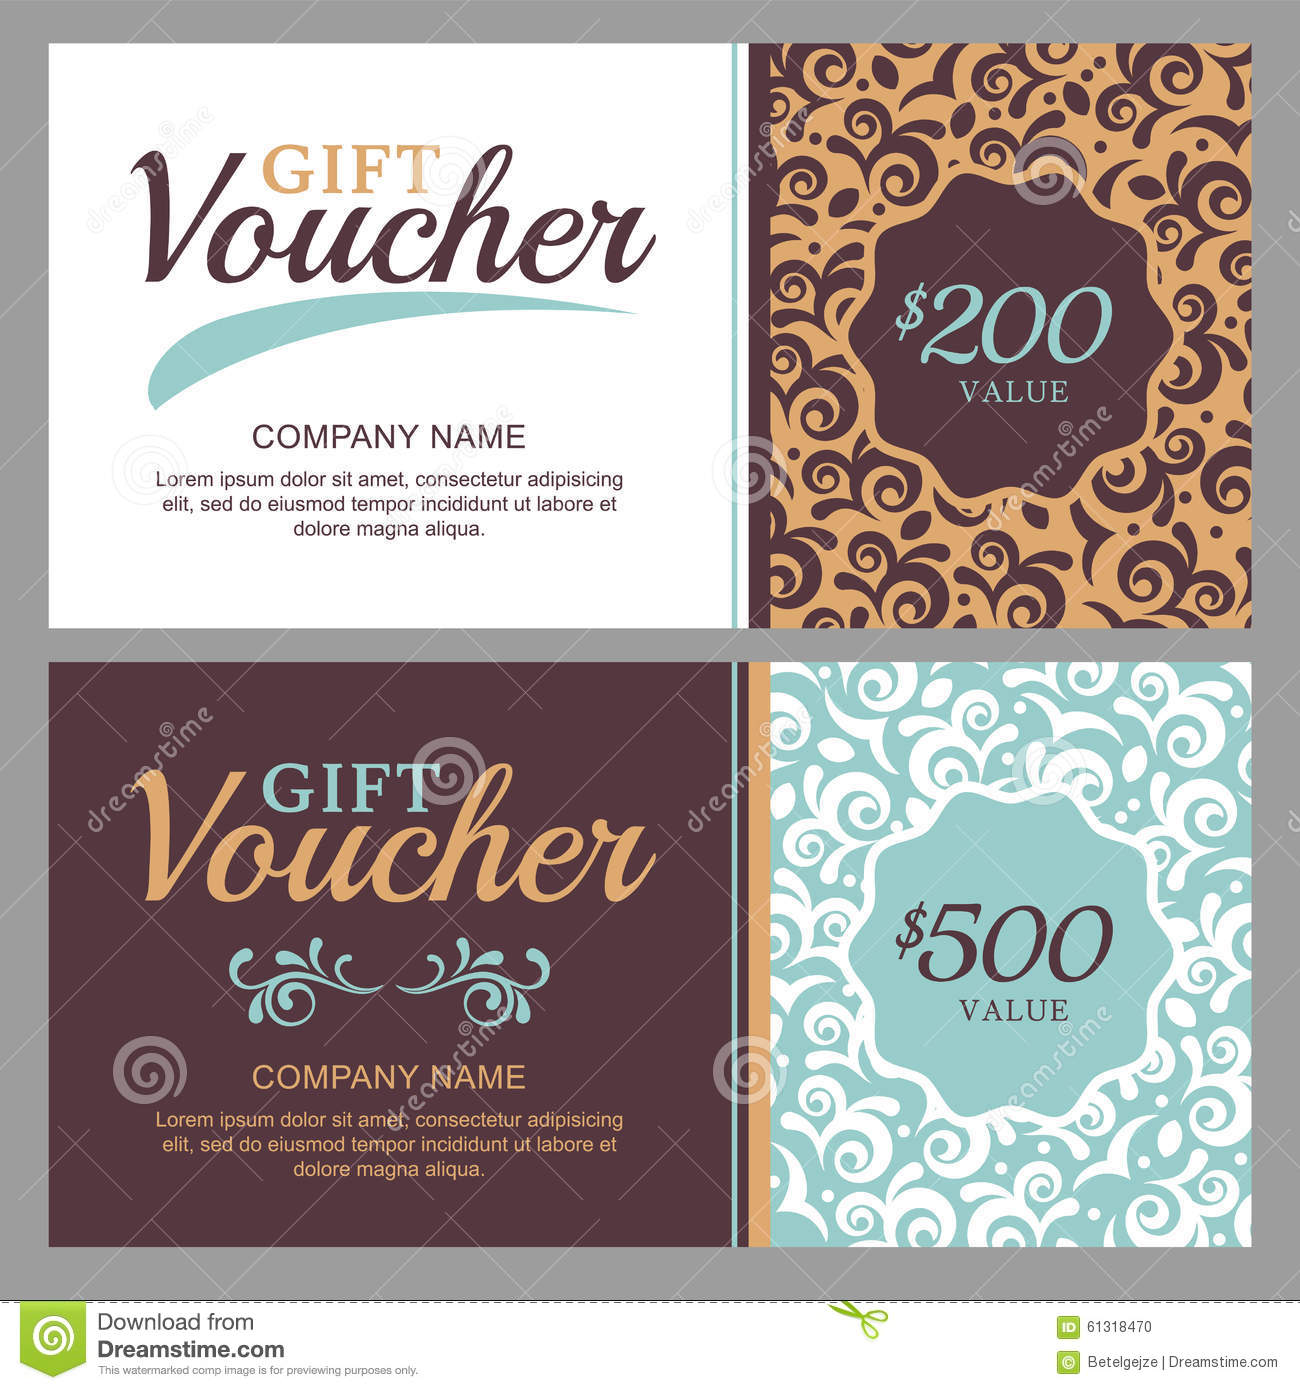 Vector Gift Voucher With Vintage Ornament Background Stock Vector Illustration Of Banner Gift 61318470